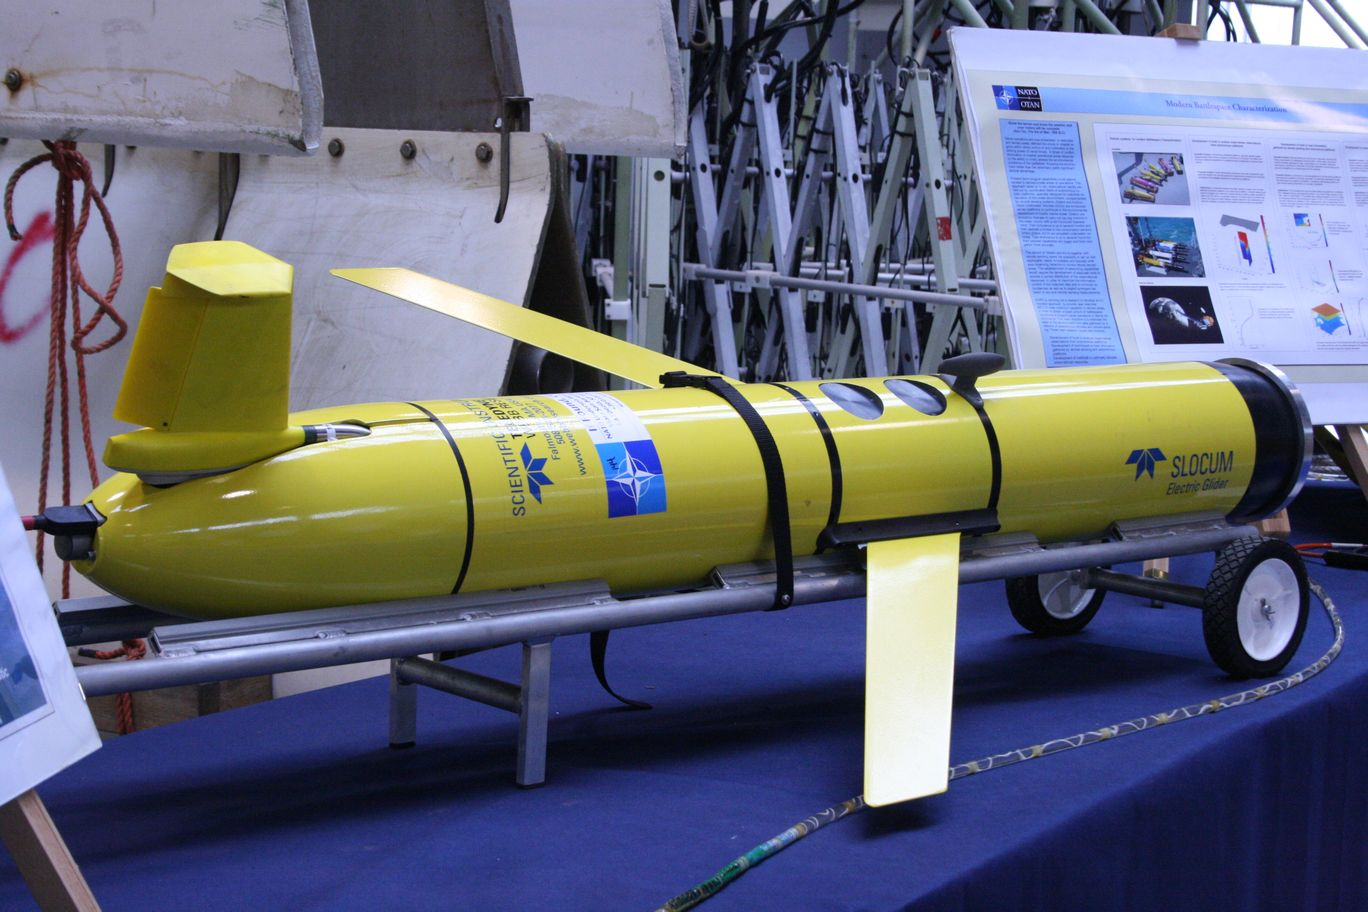 CMRE organizes the 5th Workshop on Military Applications of Underwater Glider Technology